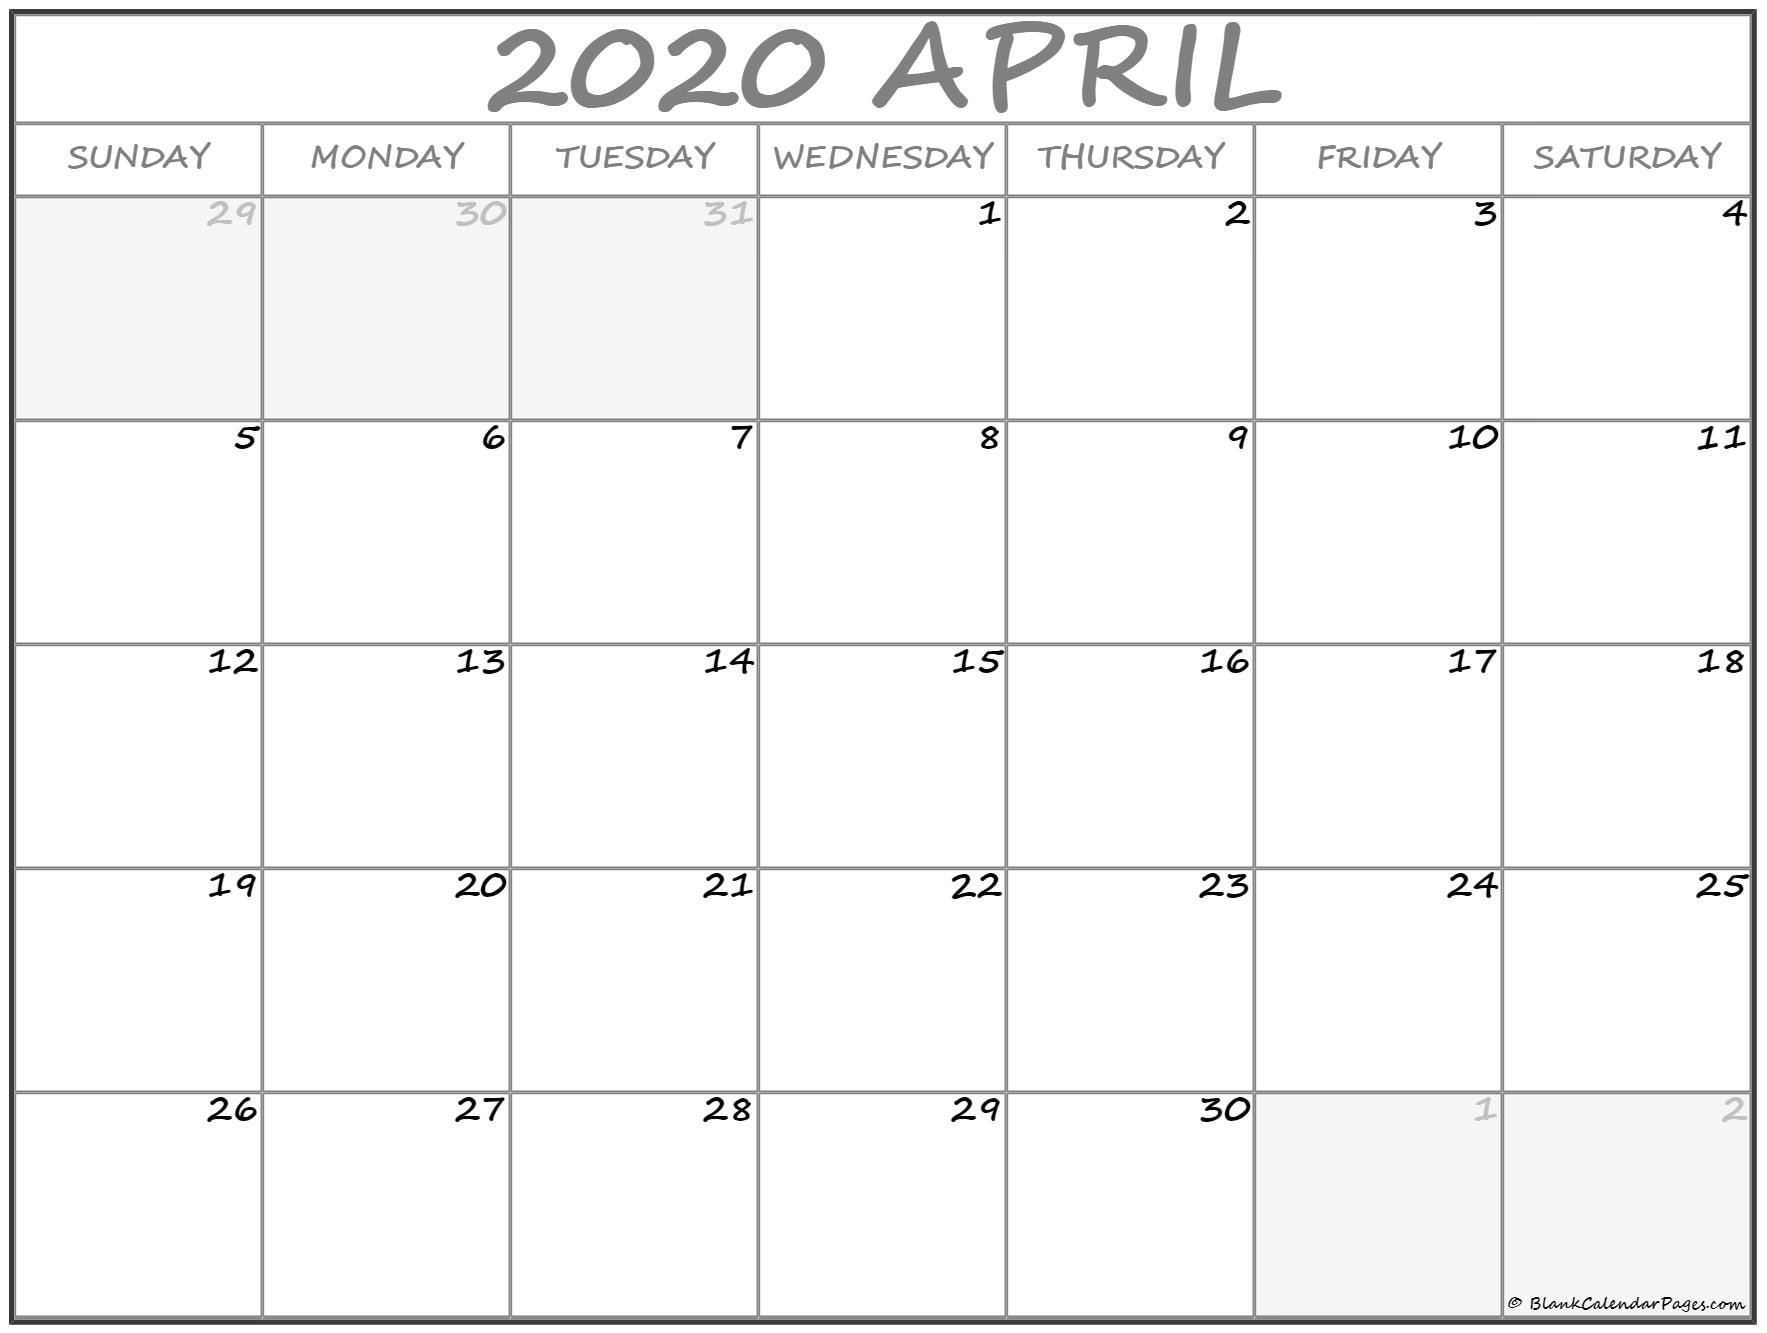 April 2020 Calendar | Free Printable Monthly Calendars Printable Month Calendar With Times